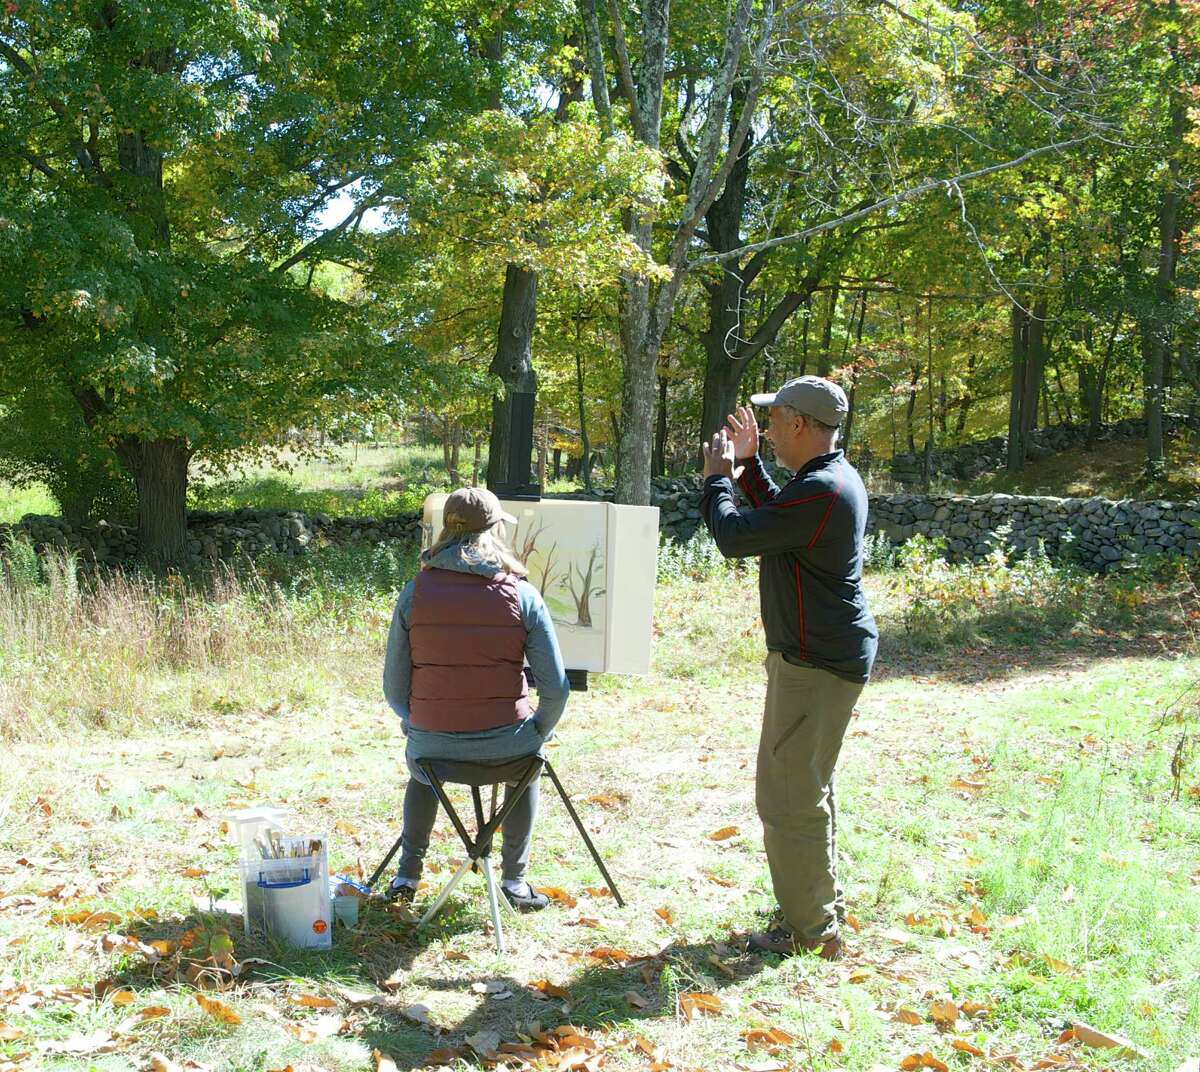 Dmitri Wright, right, a Greenwich artist, works with Donna Gagliardi, an art teacher at Shelter Rock and Great Plain elementary schools in Danbury, during a fall workshop at Weir Farm National Historic Site in Wilton in 2014. Wright's Weir Farm Art Academy will run at the site in October.